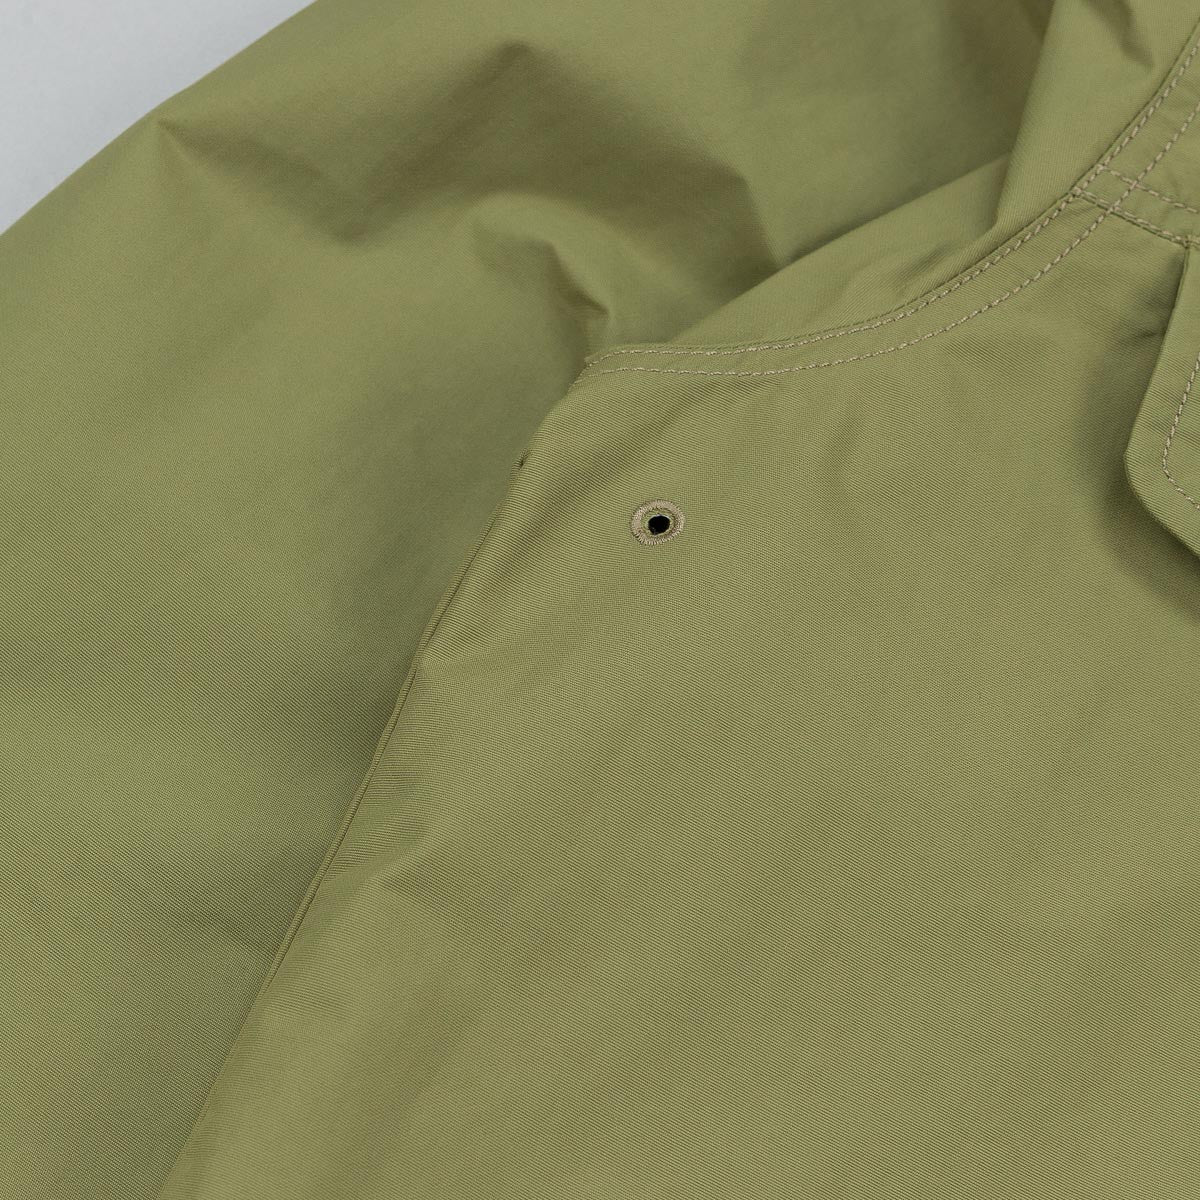 Patagonia Baggies Parka Jacket - Spanish Moss Green